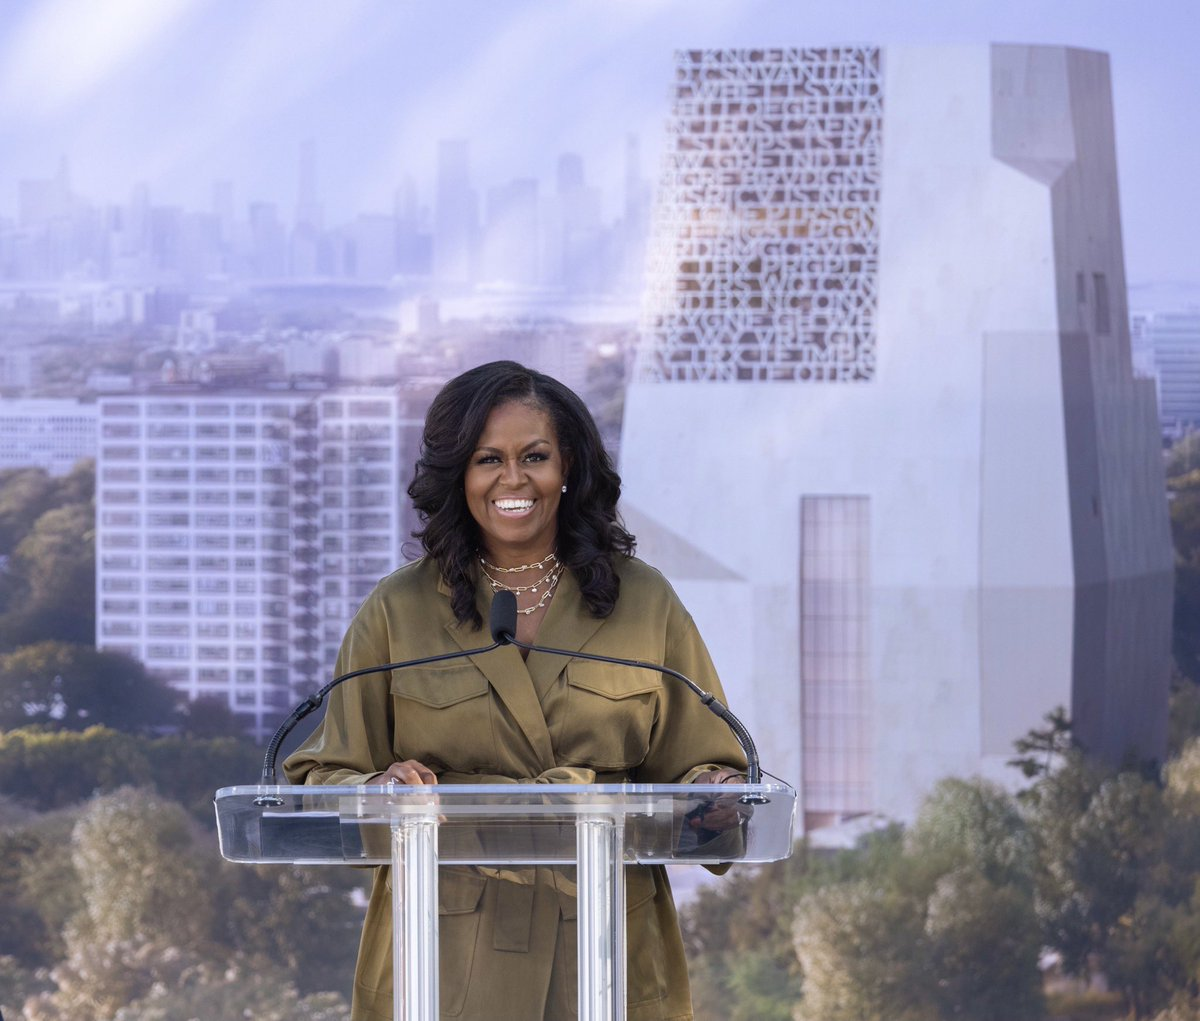 One of the greatest honors of my life is being a proud Chicagoan—a daughter of the South Side. When it came time to decide where Barack and I would build the Obama Presidential Center, we knew it had to be in the place we call home. We can't wait to see this project come to life.